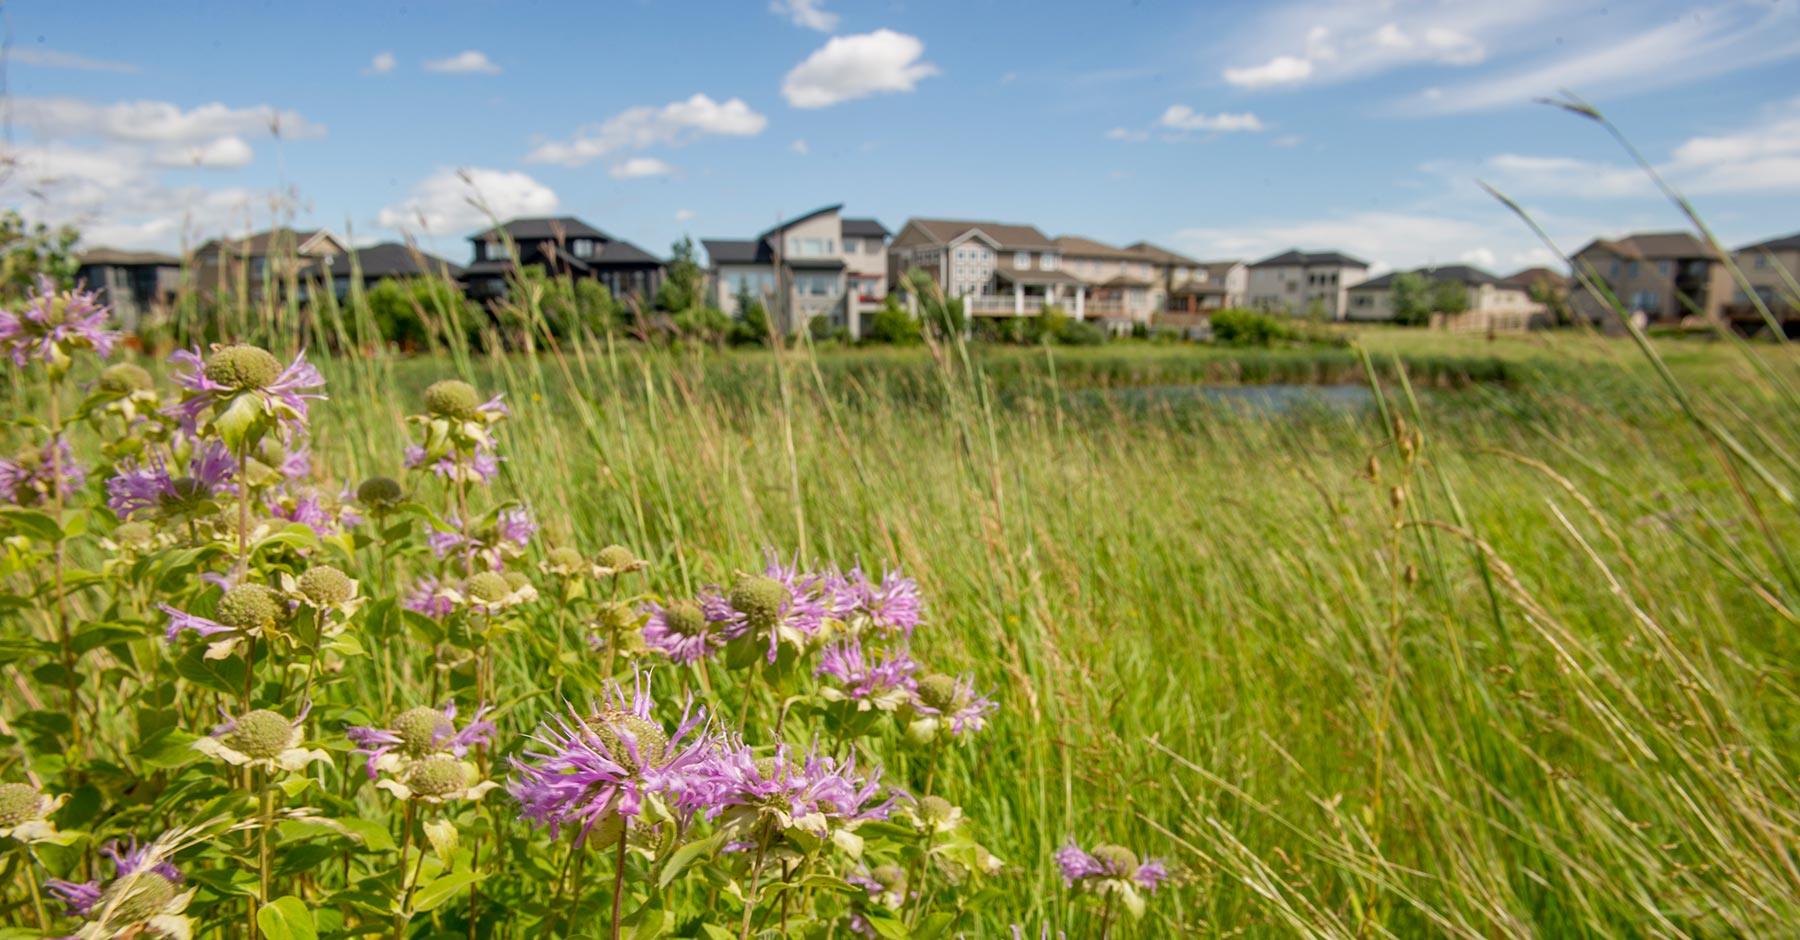 Nature - Grasses, Flowers and Homes